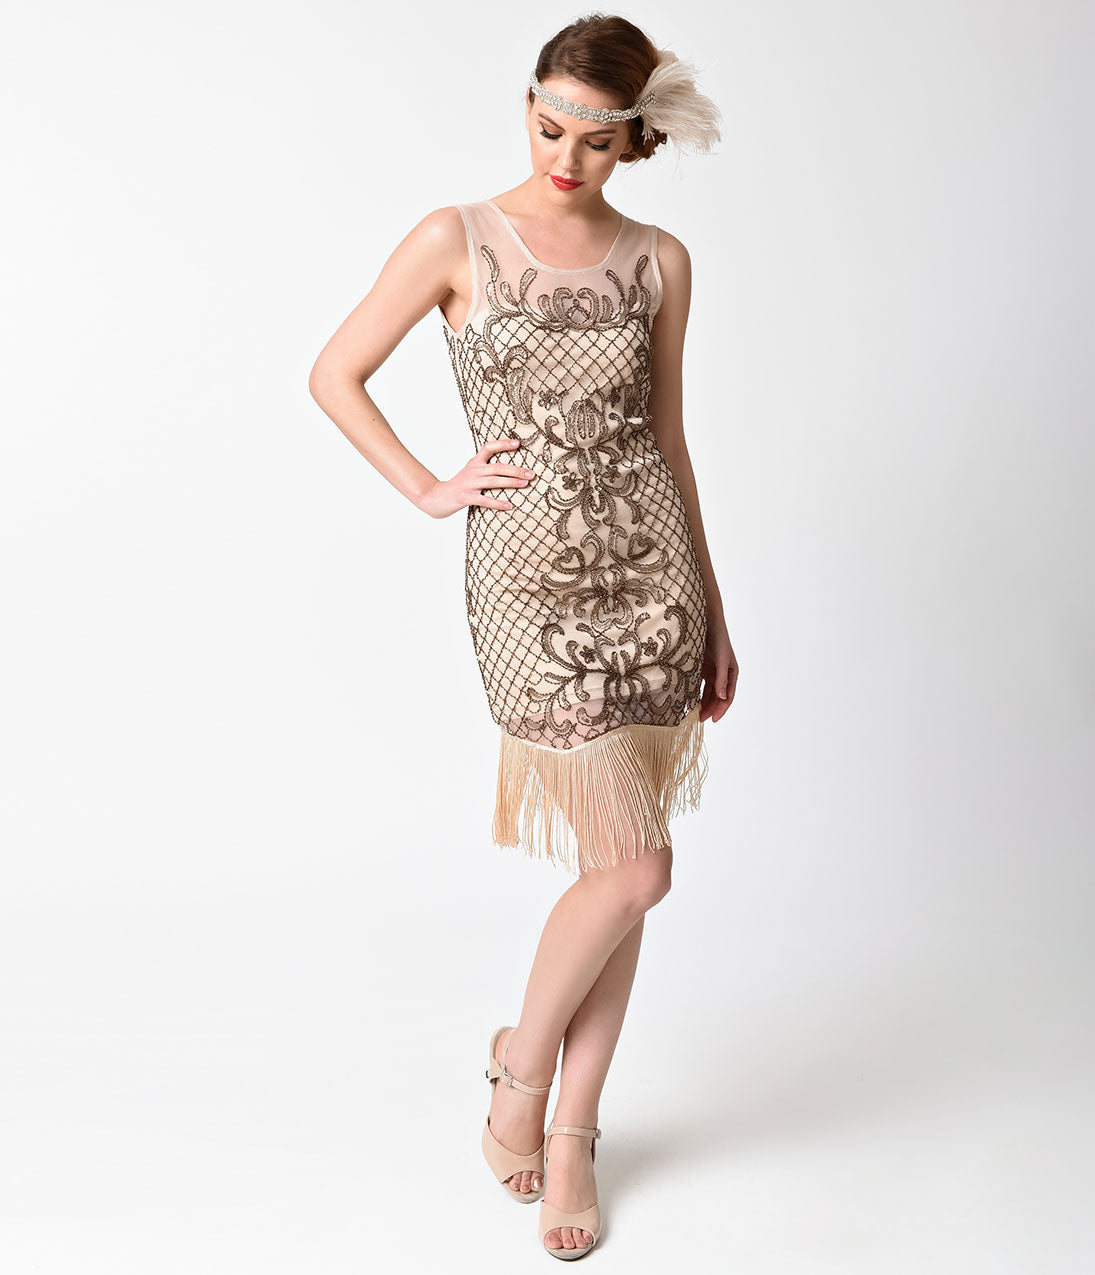 Roaring 20s Costumes- Flapper Costumes, Gangster Costumes 1920s Style Beige Filigree Sleeveless Beaded Flapper Dress $48.00 AT vintagedancer.com